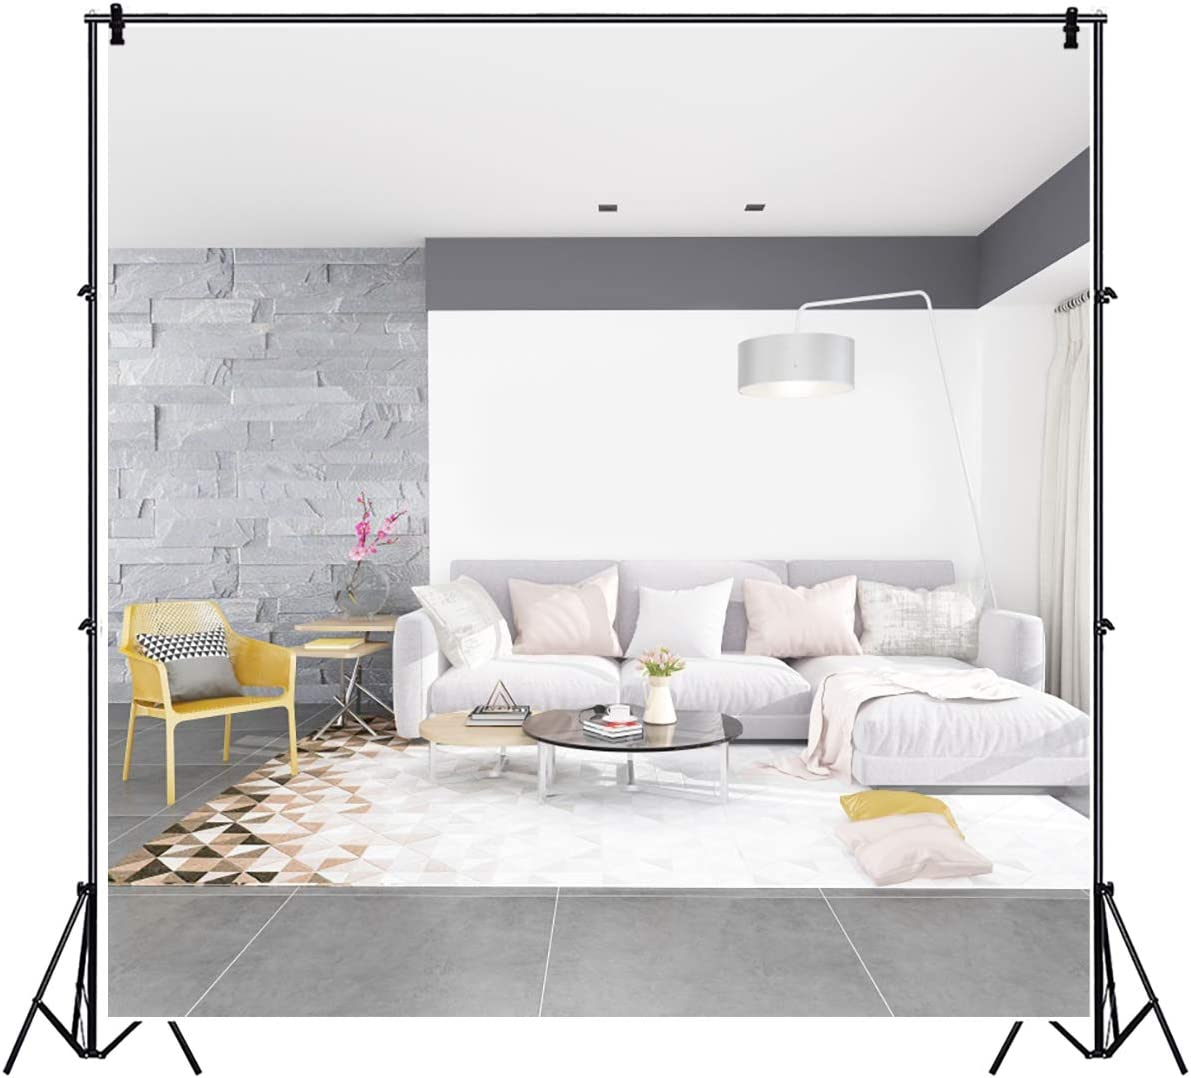 YEELE Bright Living Room Interior Photography Backdrop 10x10ft Fashion Furnitures Inside Cozy Apartment Background Modern House Indoor Home Kids Adult Portrait Photo Studio Props Wallpaper